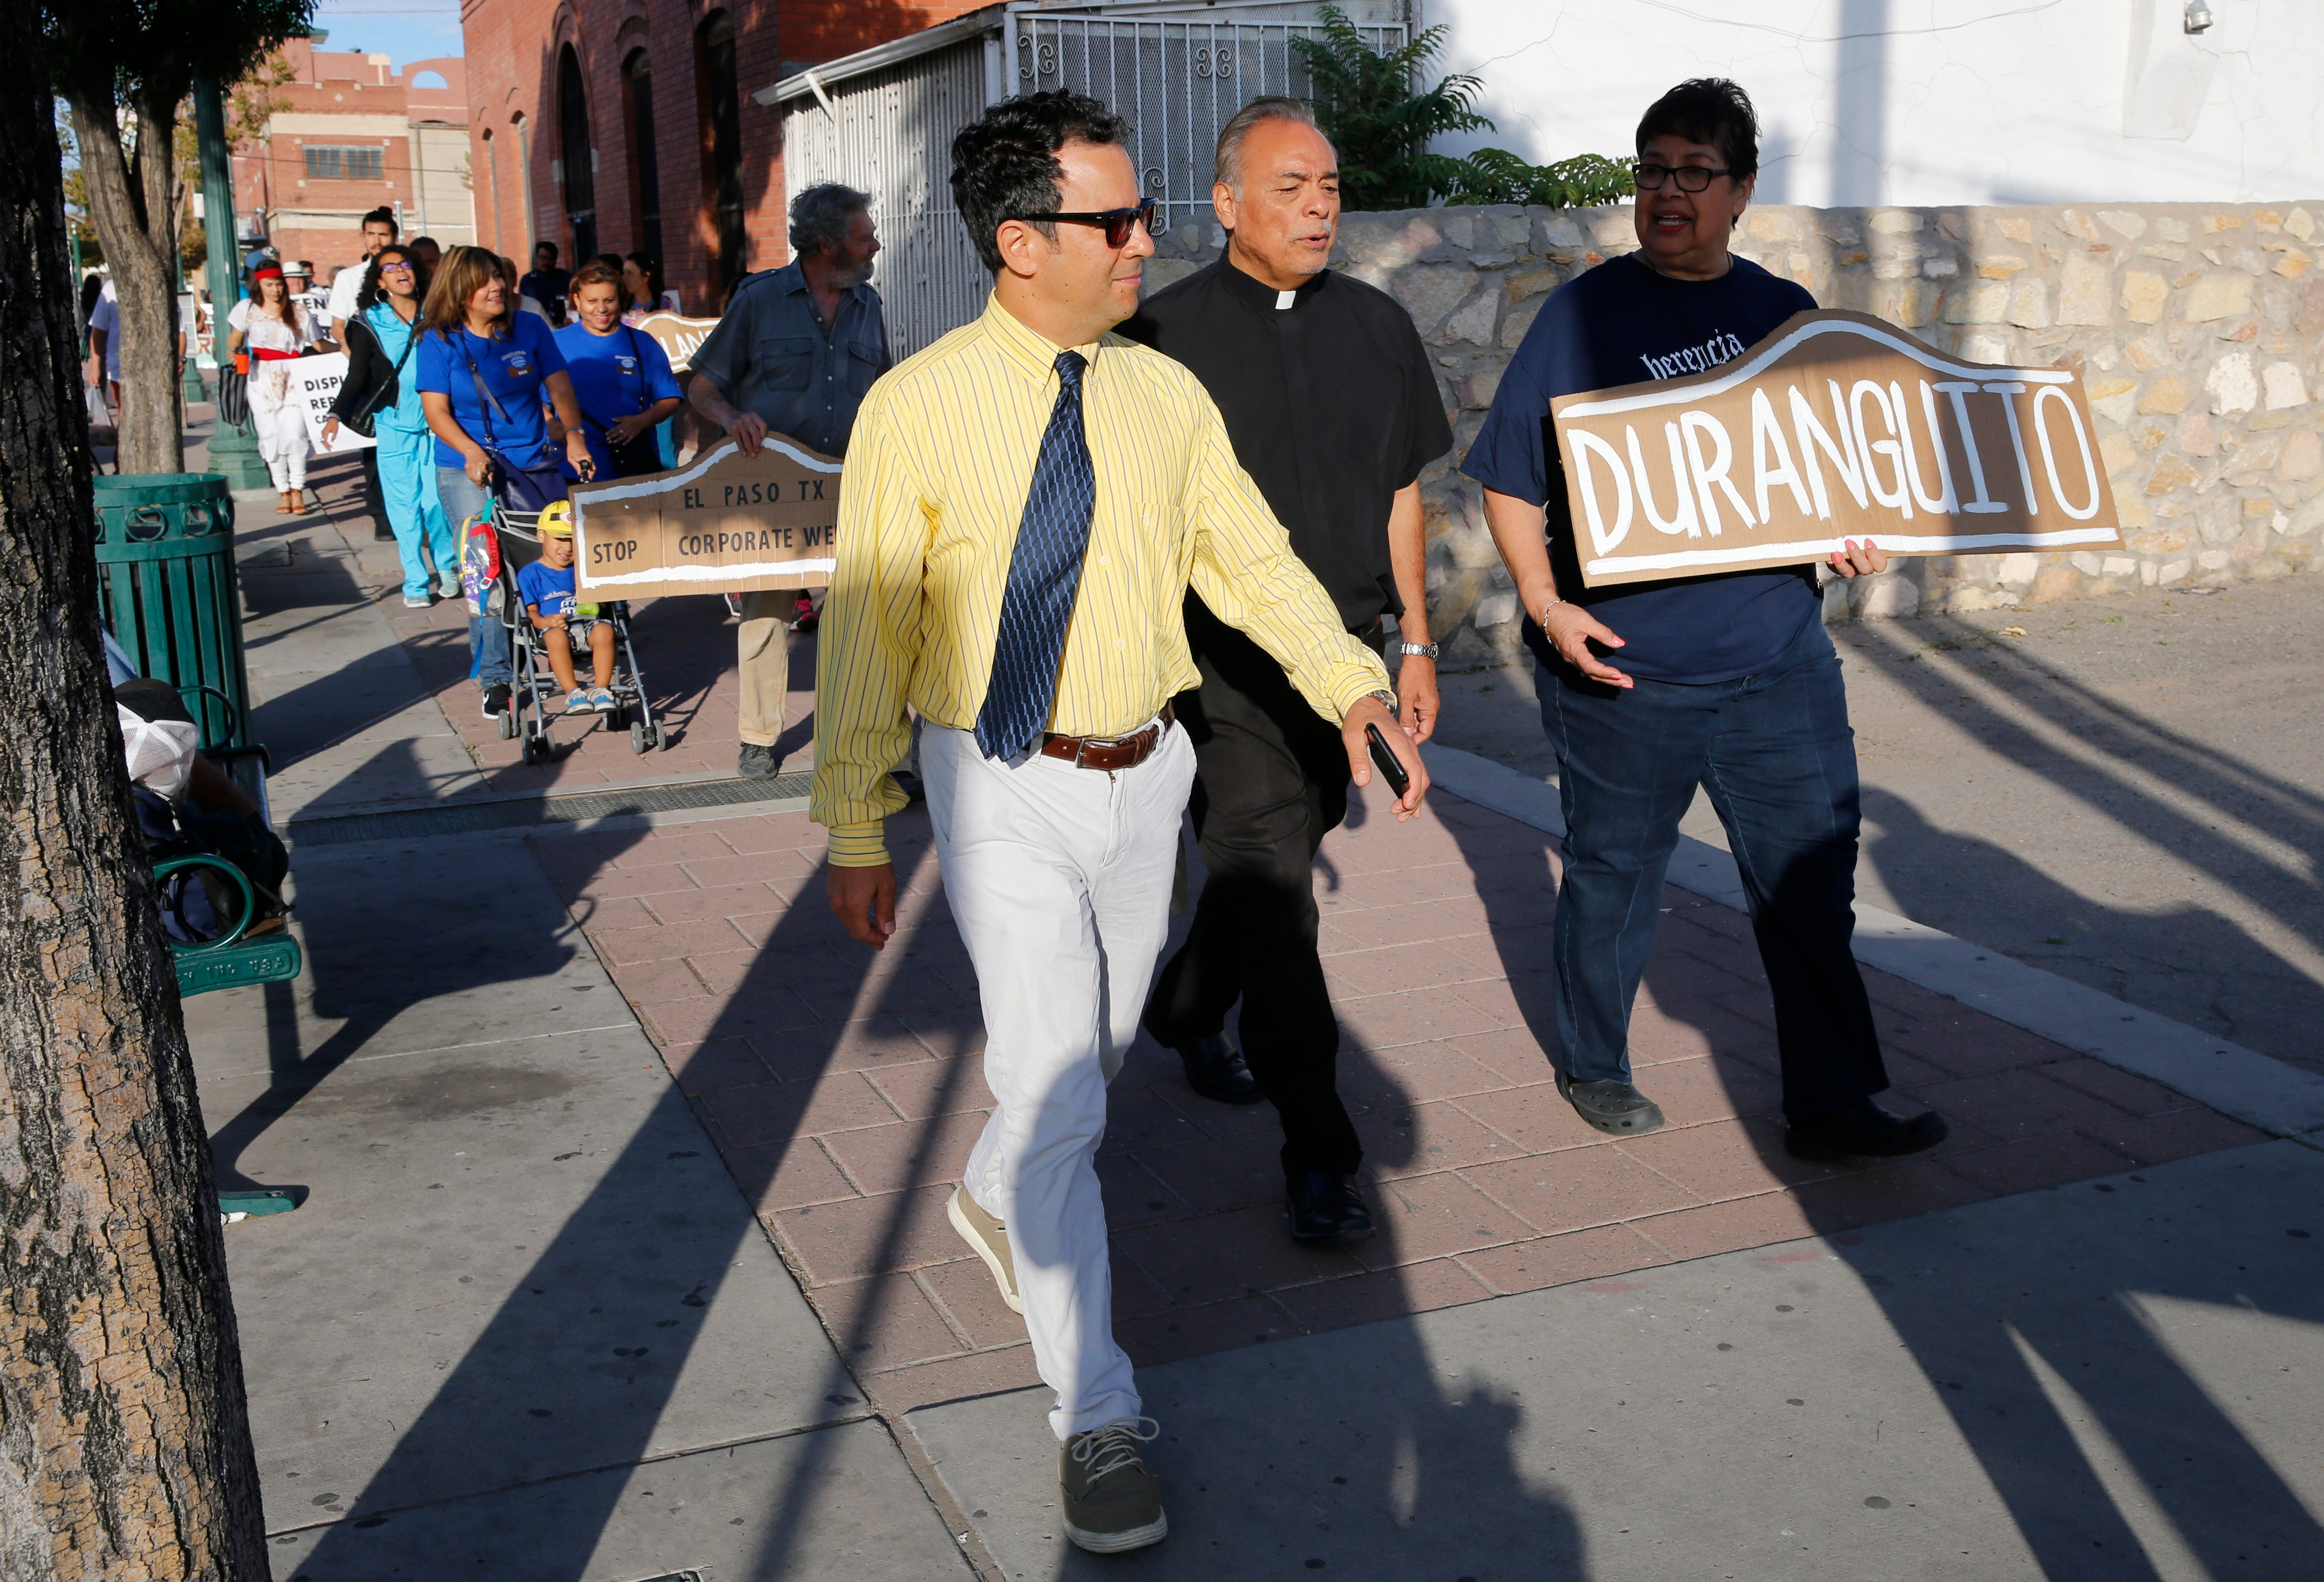 Latest Downtown El Paso arena lawsuit may force vote on area historic overlay | El Paso Times